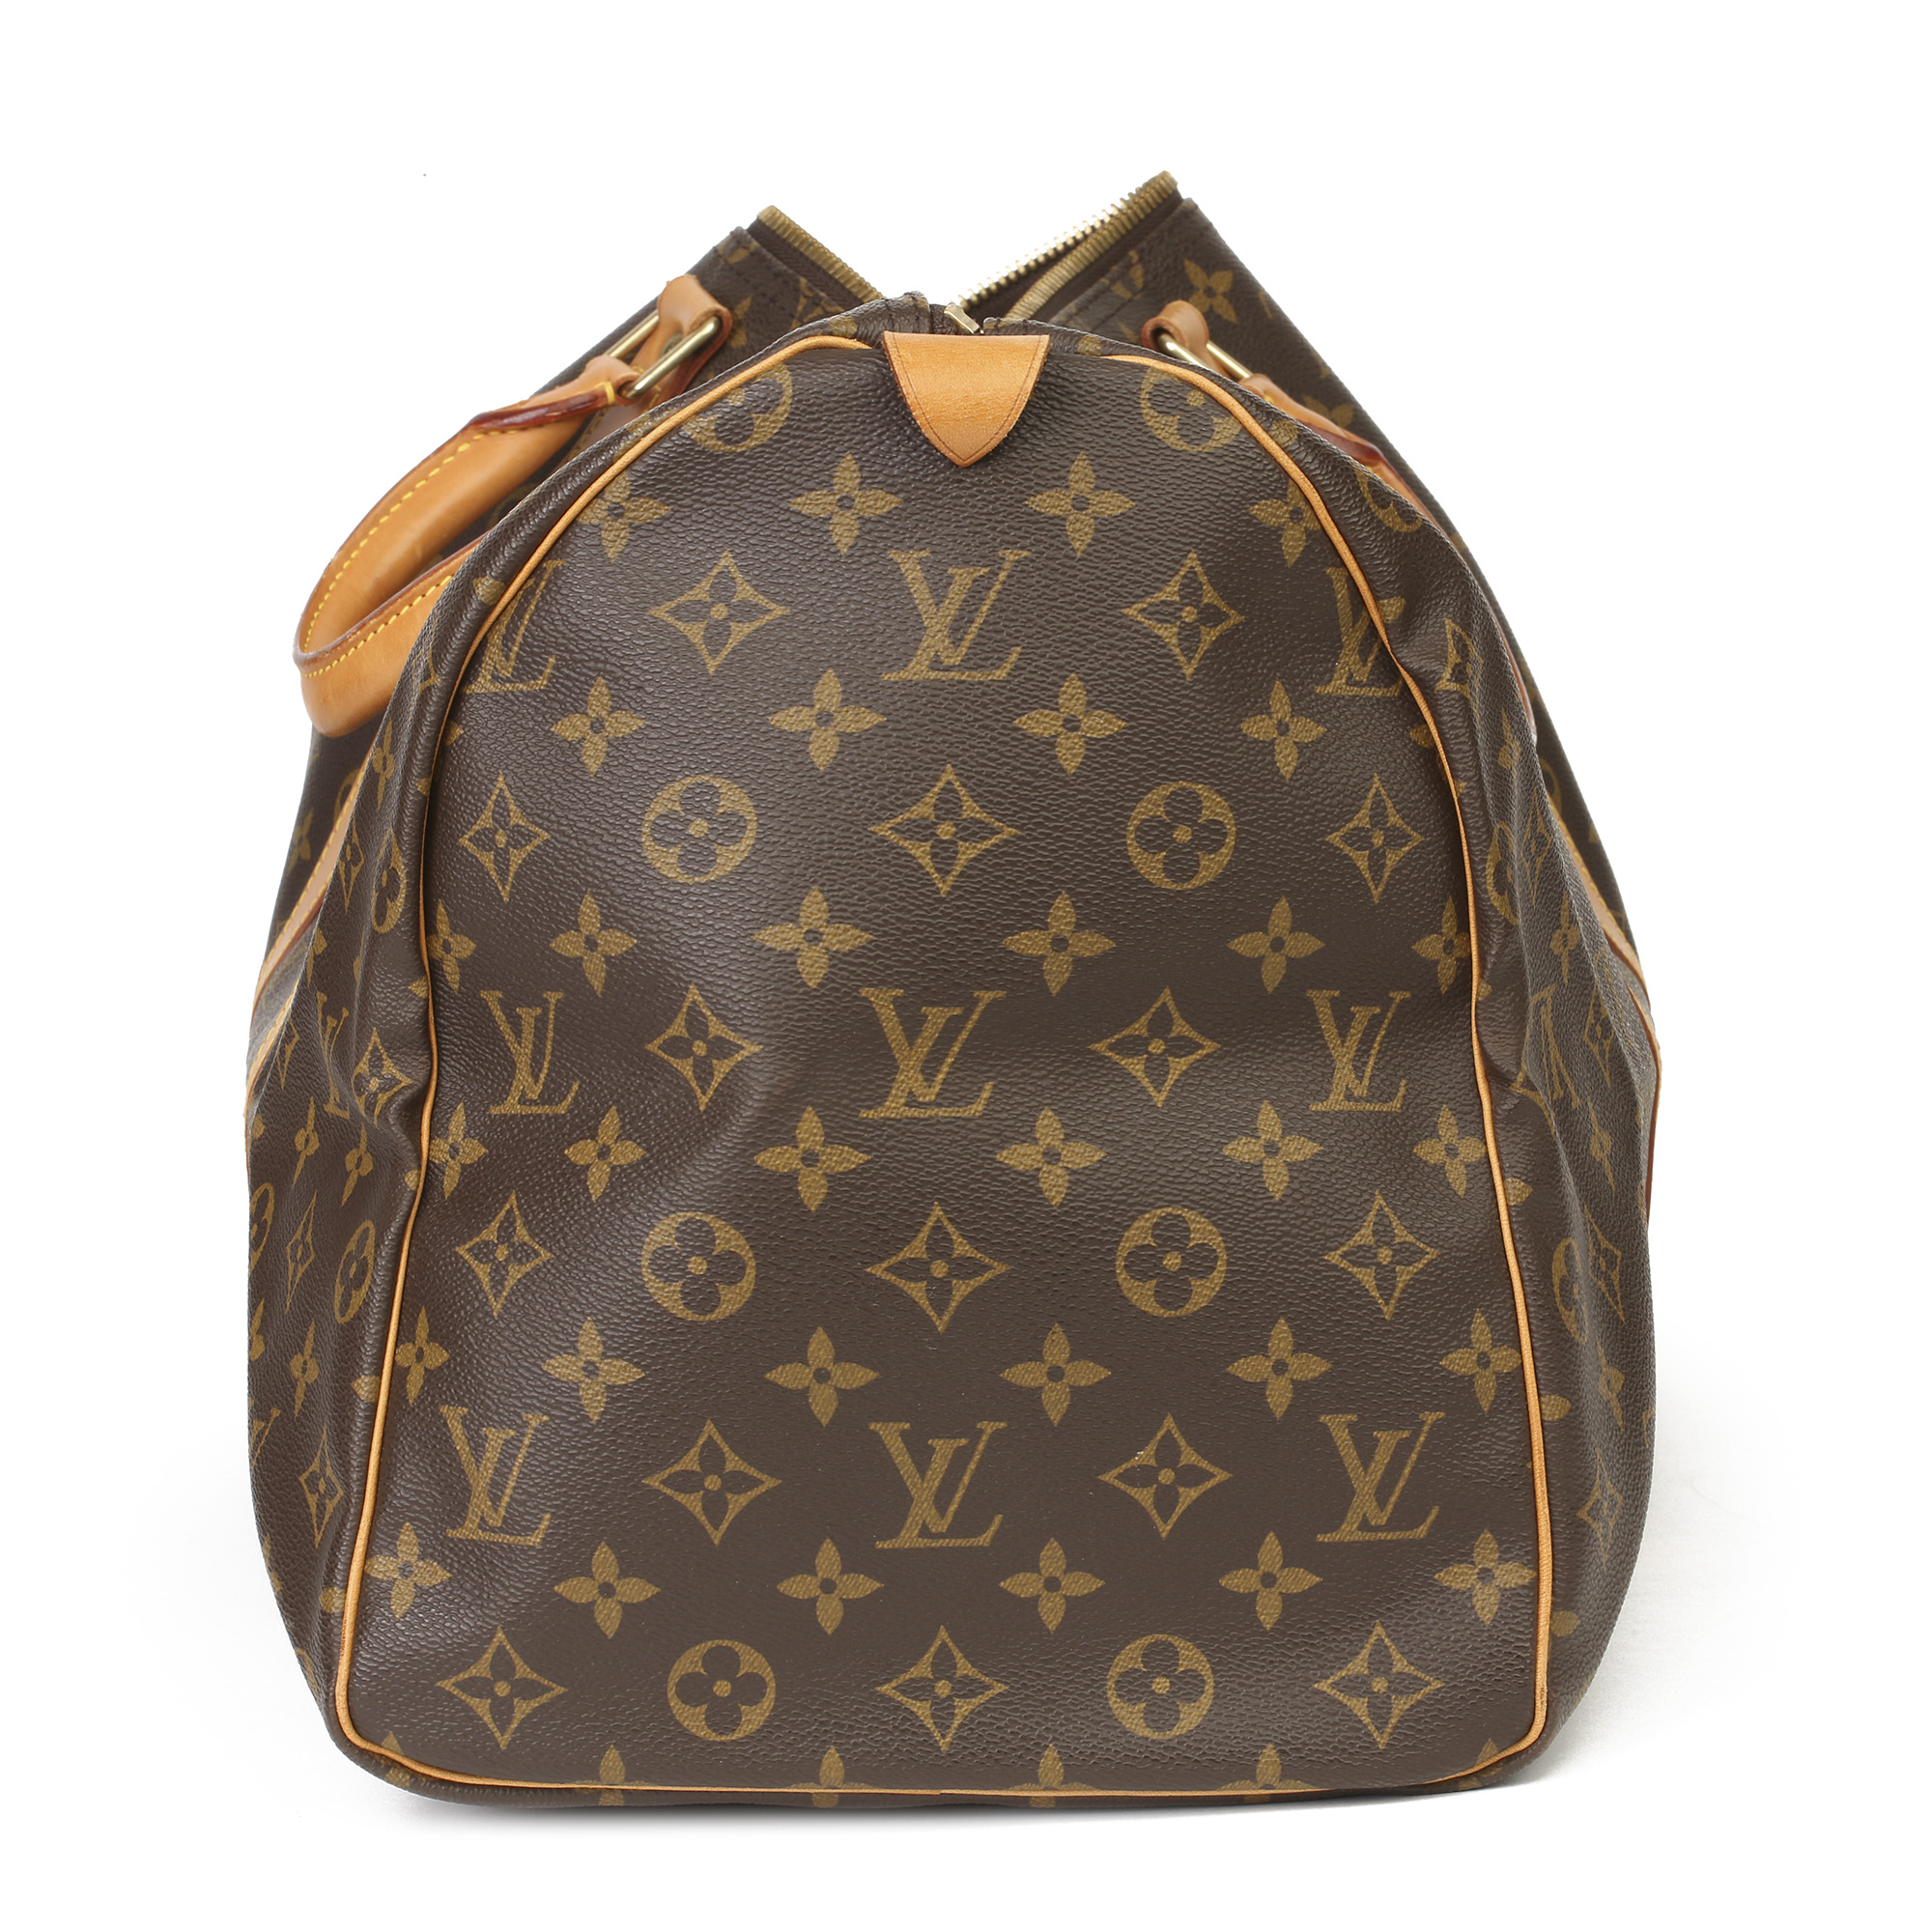 Louis Vuitton Brown Monogram Coated Canvas & Vachetta Leather Vintage Keepall 50 - Image 10 of 11